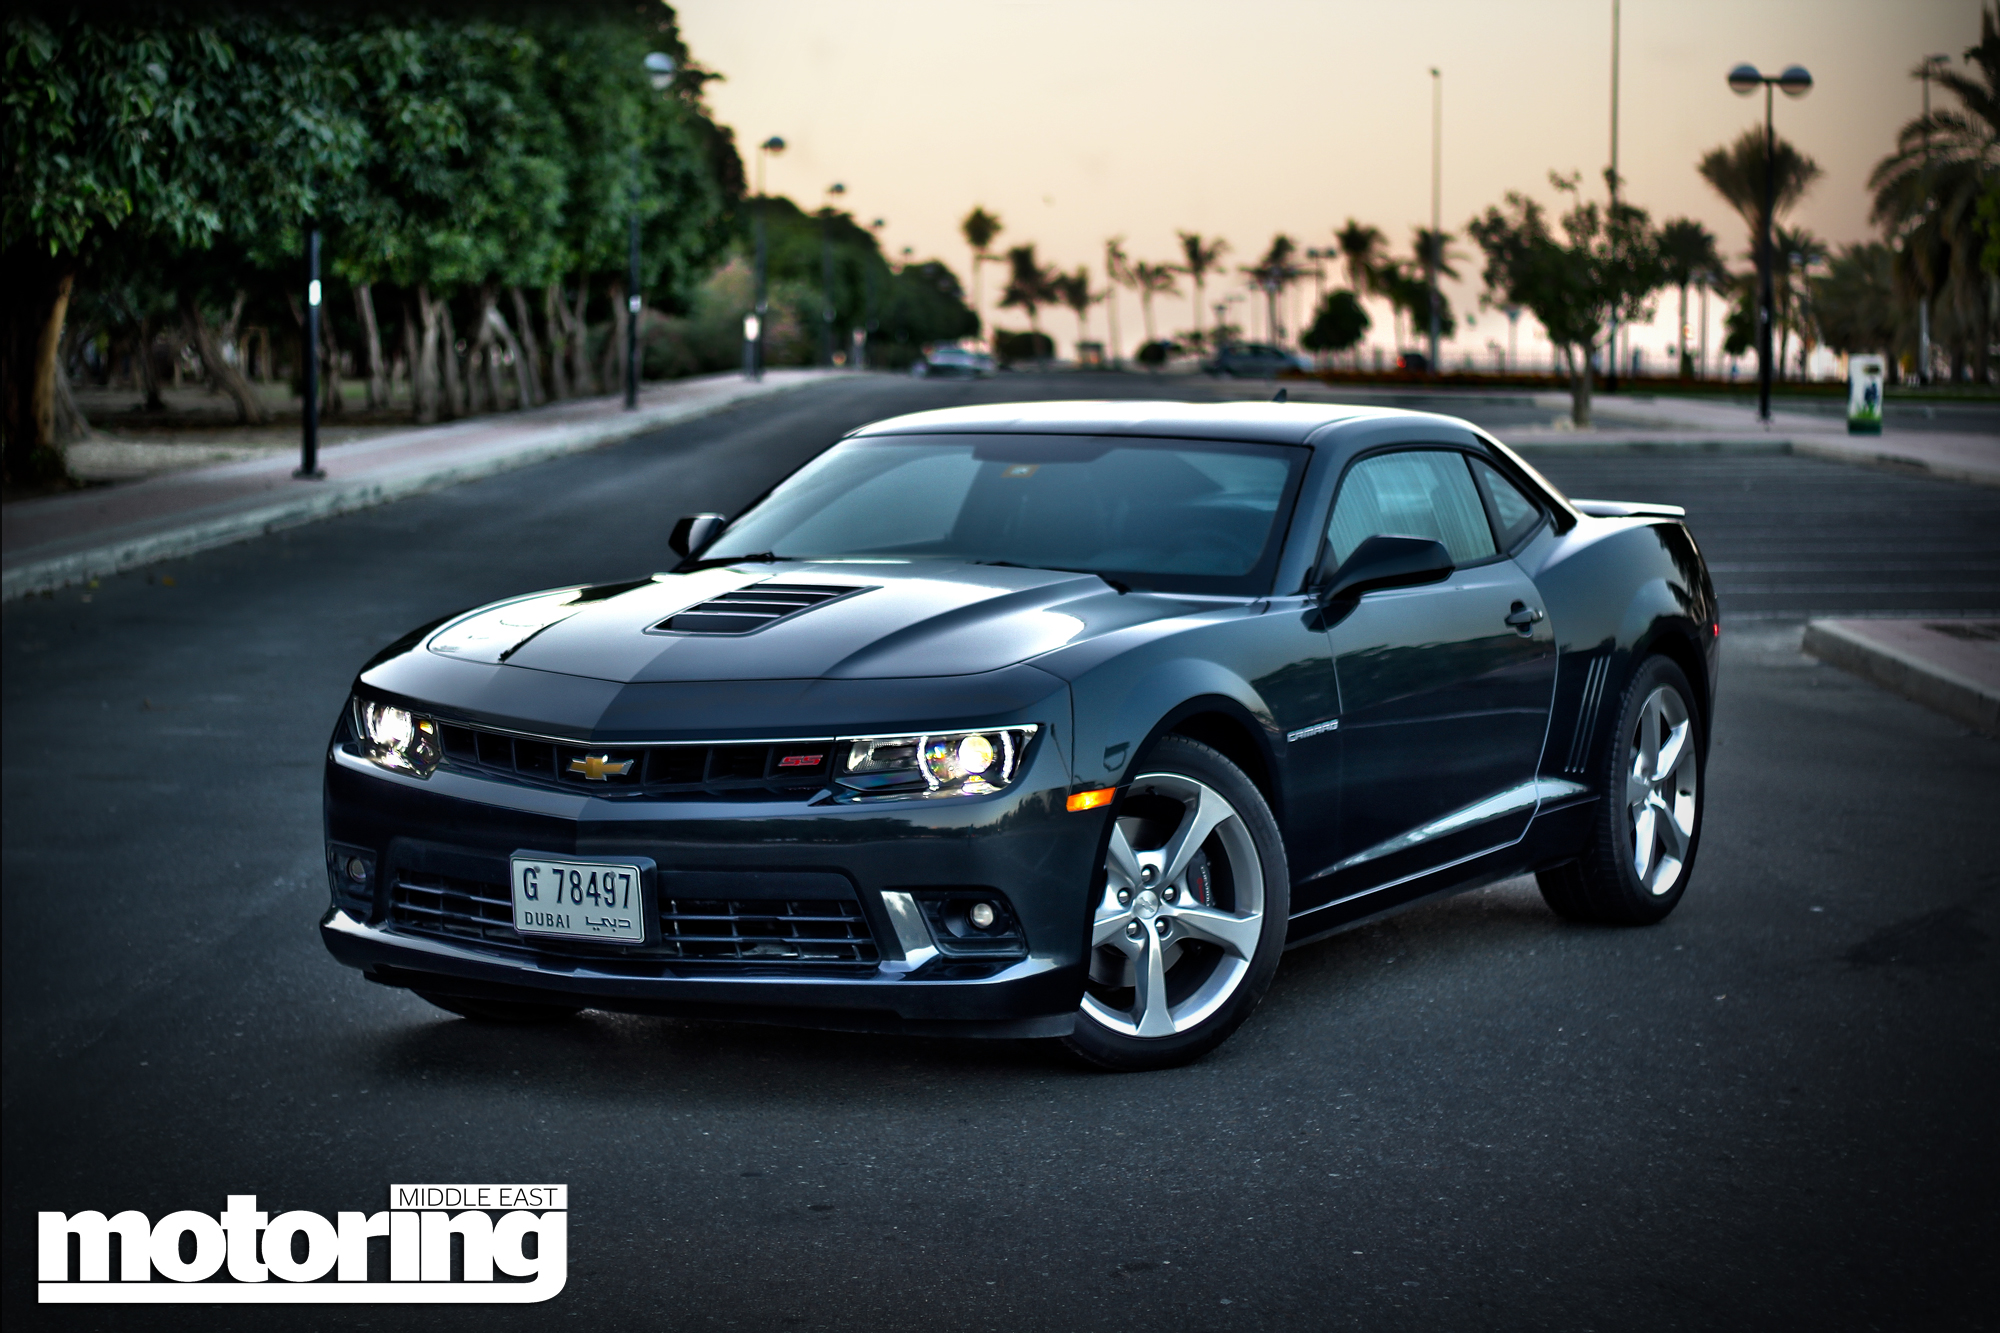 2014 Chevrolet Camaro SS Review - Motoring Middle East: Car news ...